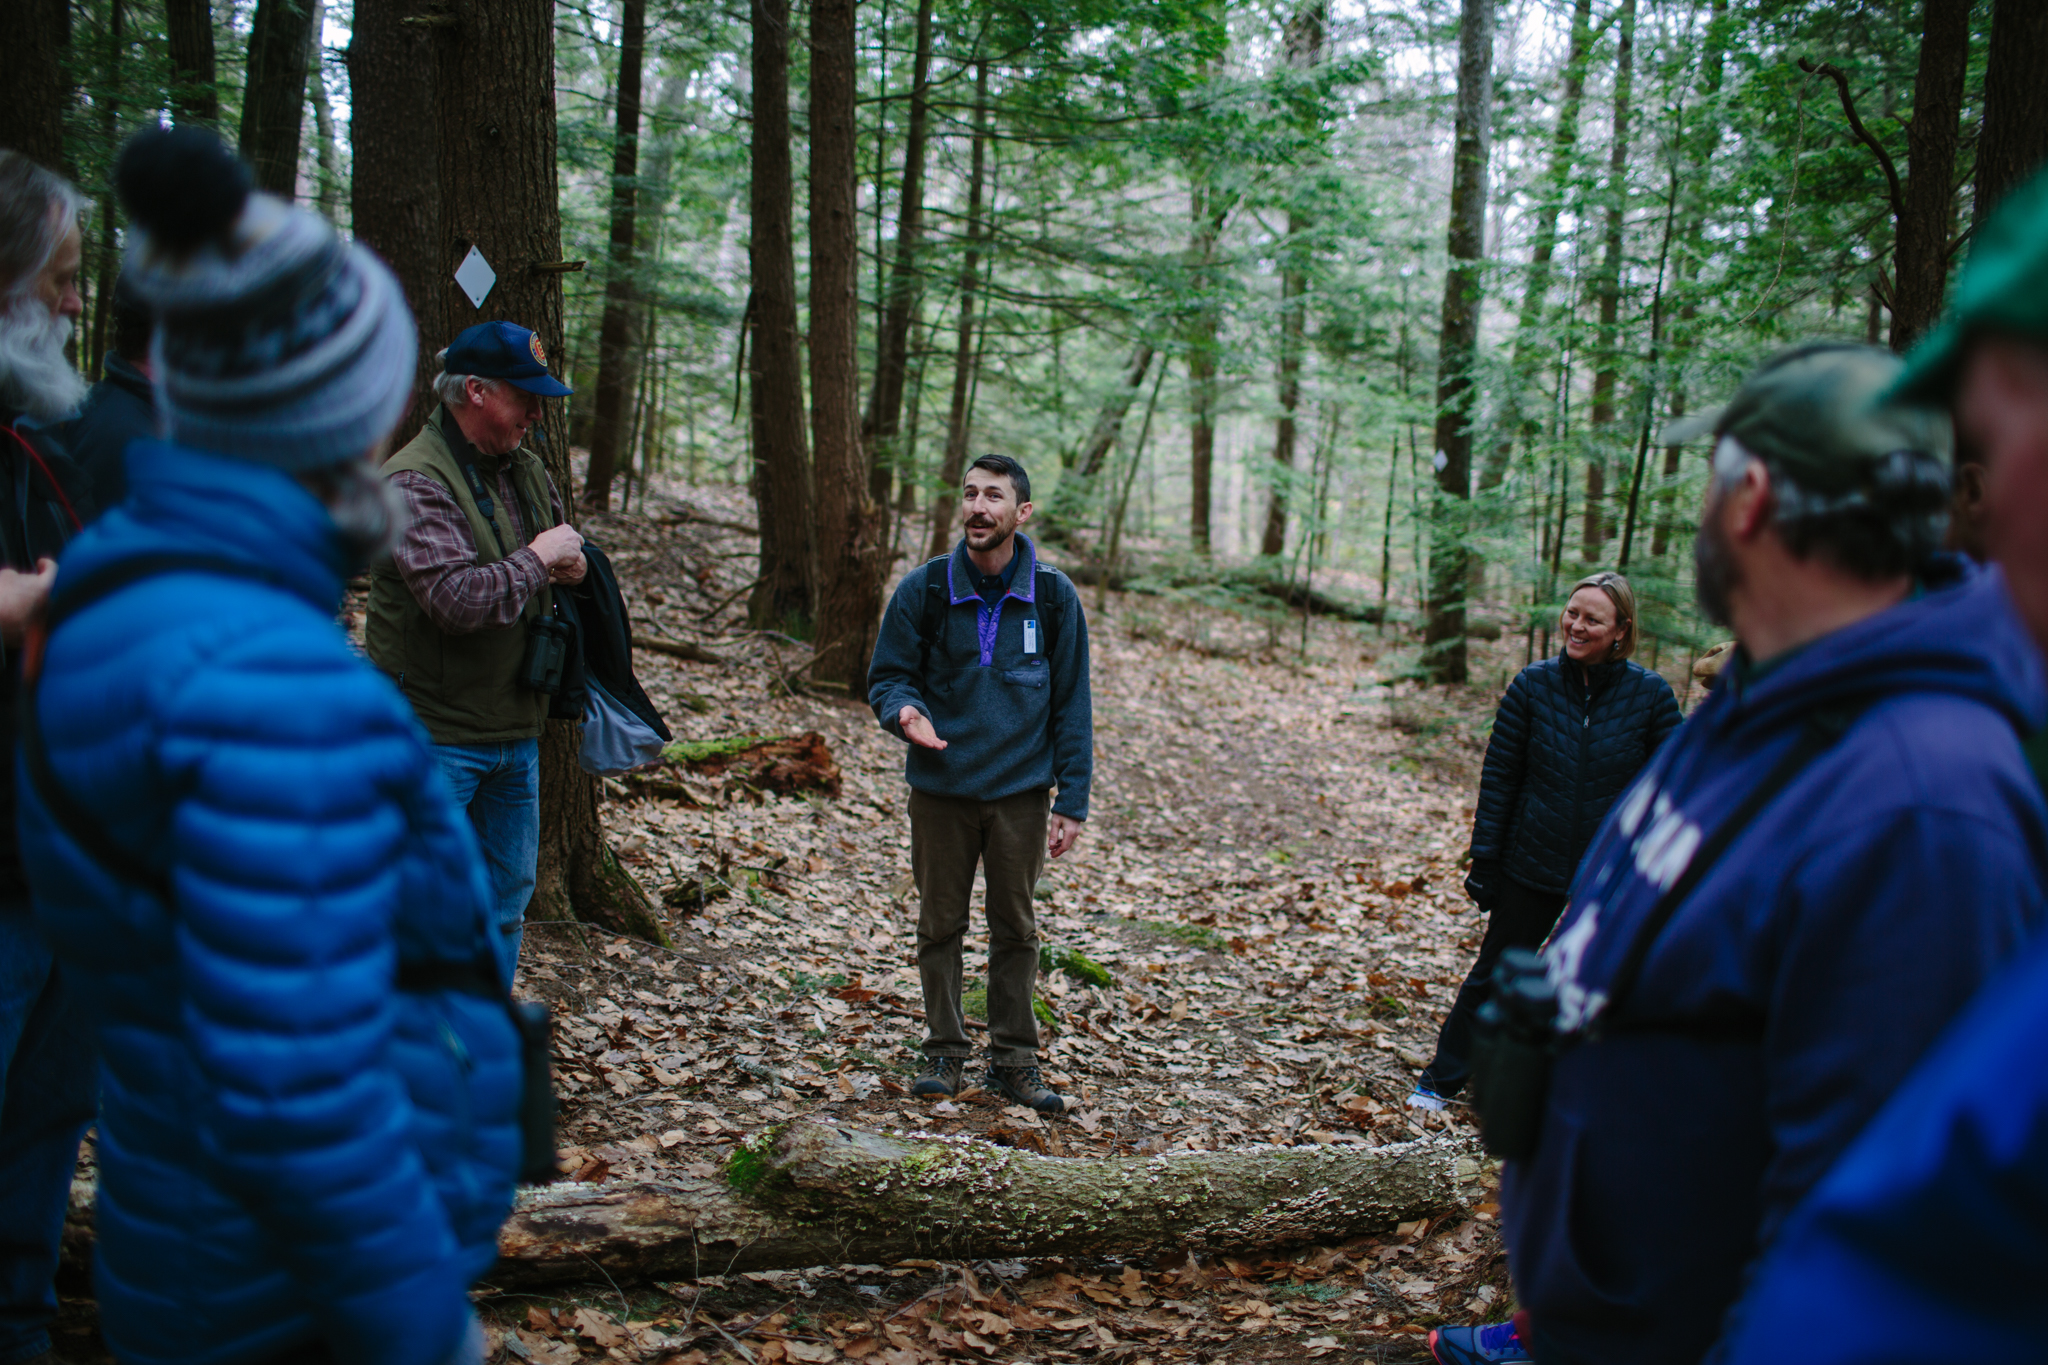 Program Coordinator Andy Crowley gives advice on clearing debris from a hiking trail